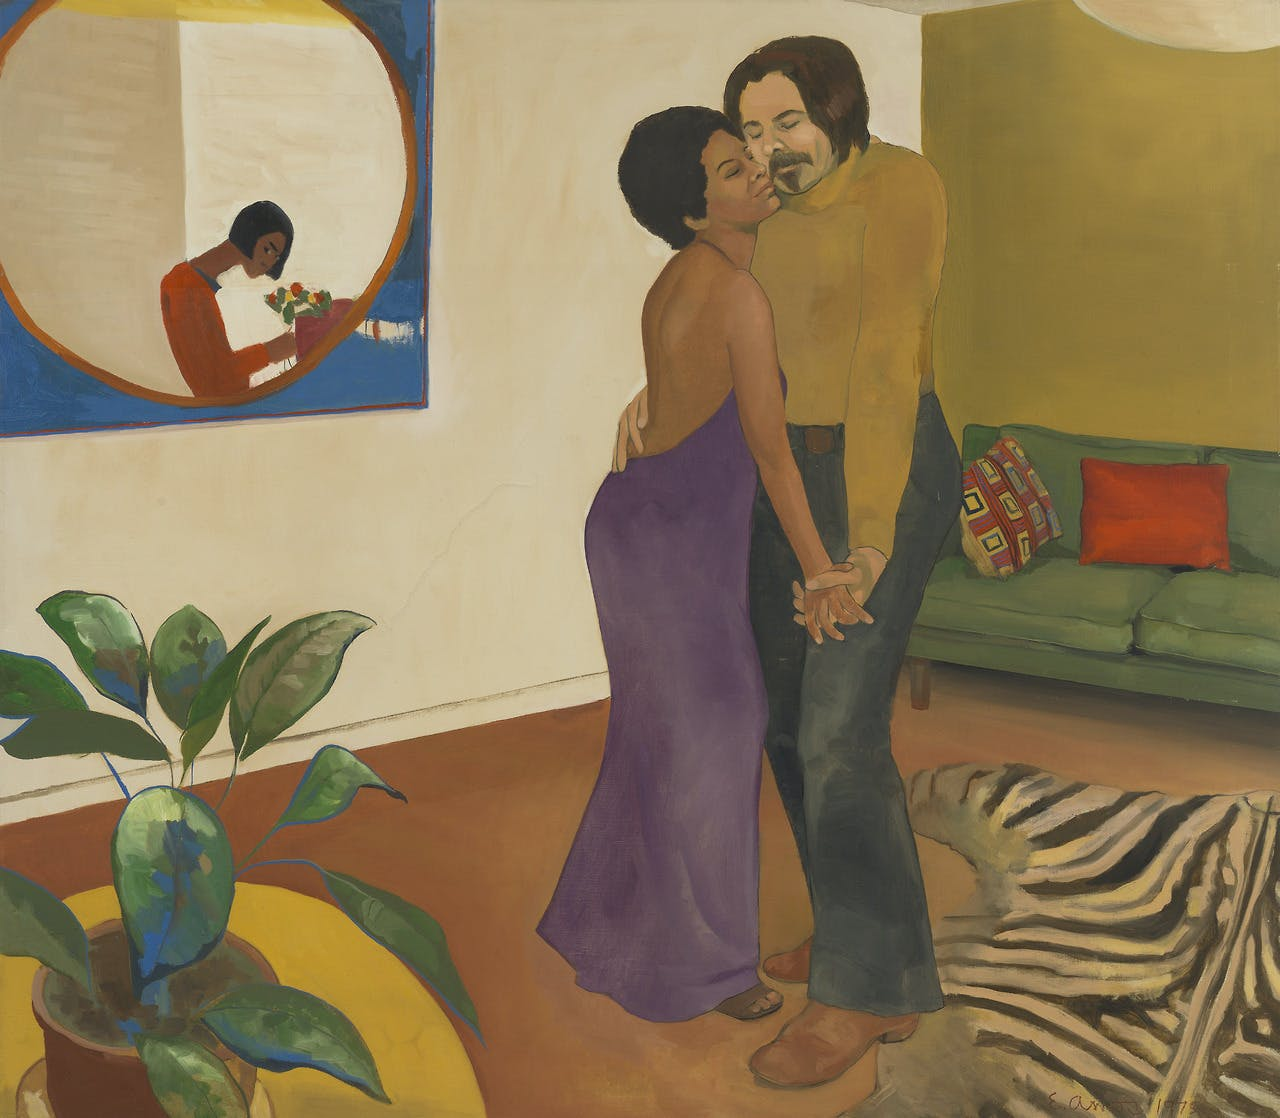 Sandy and Her Husband (1973), Emma Amos. Cleveland Museum of Art